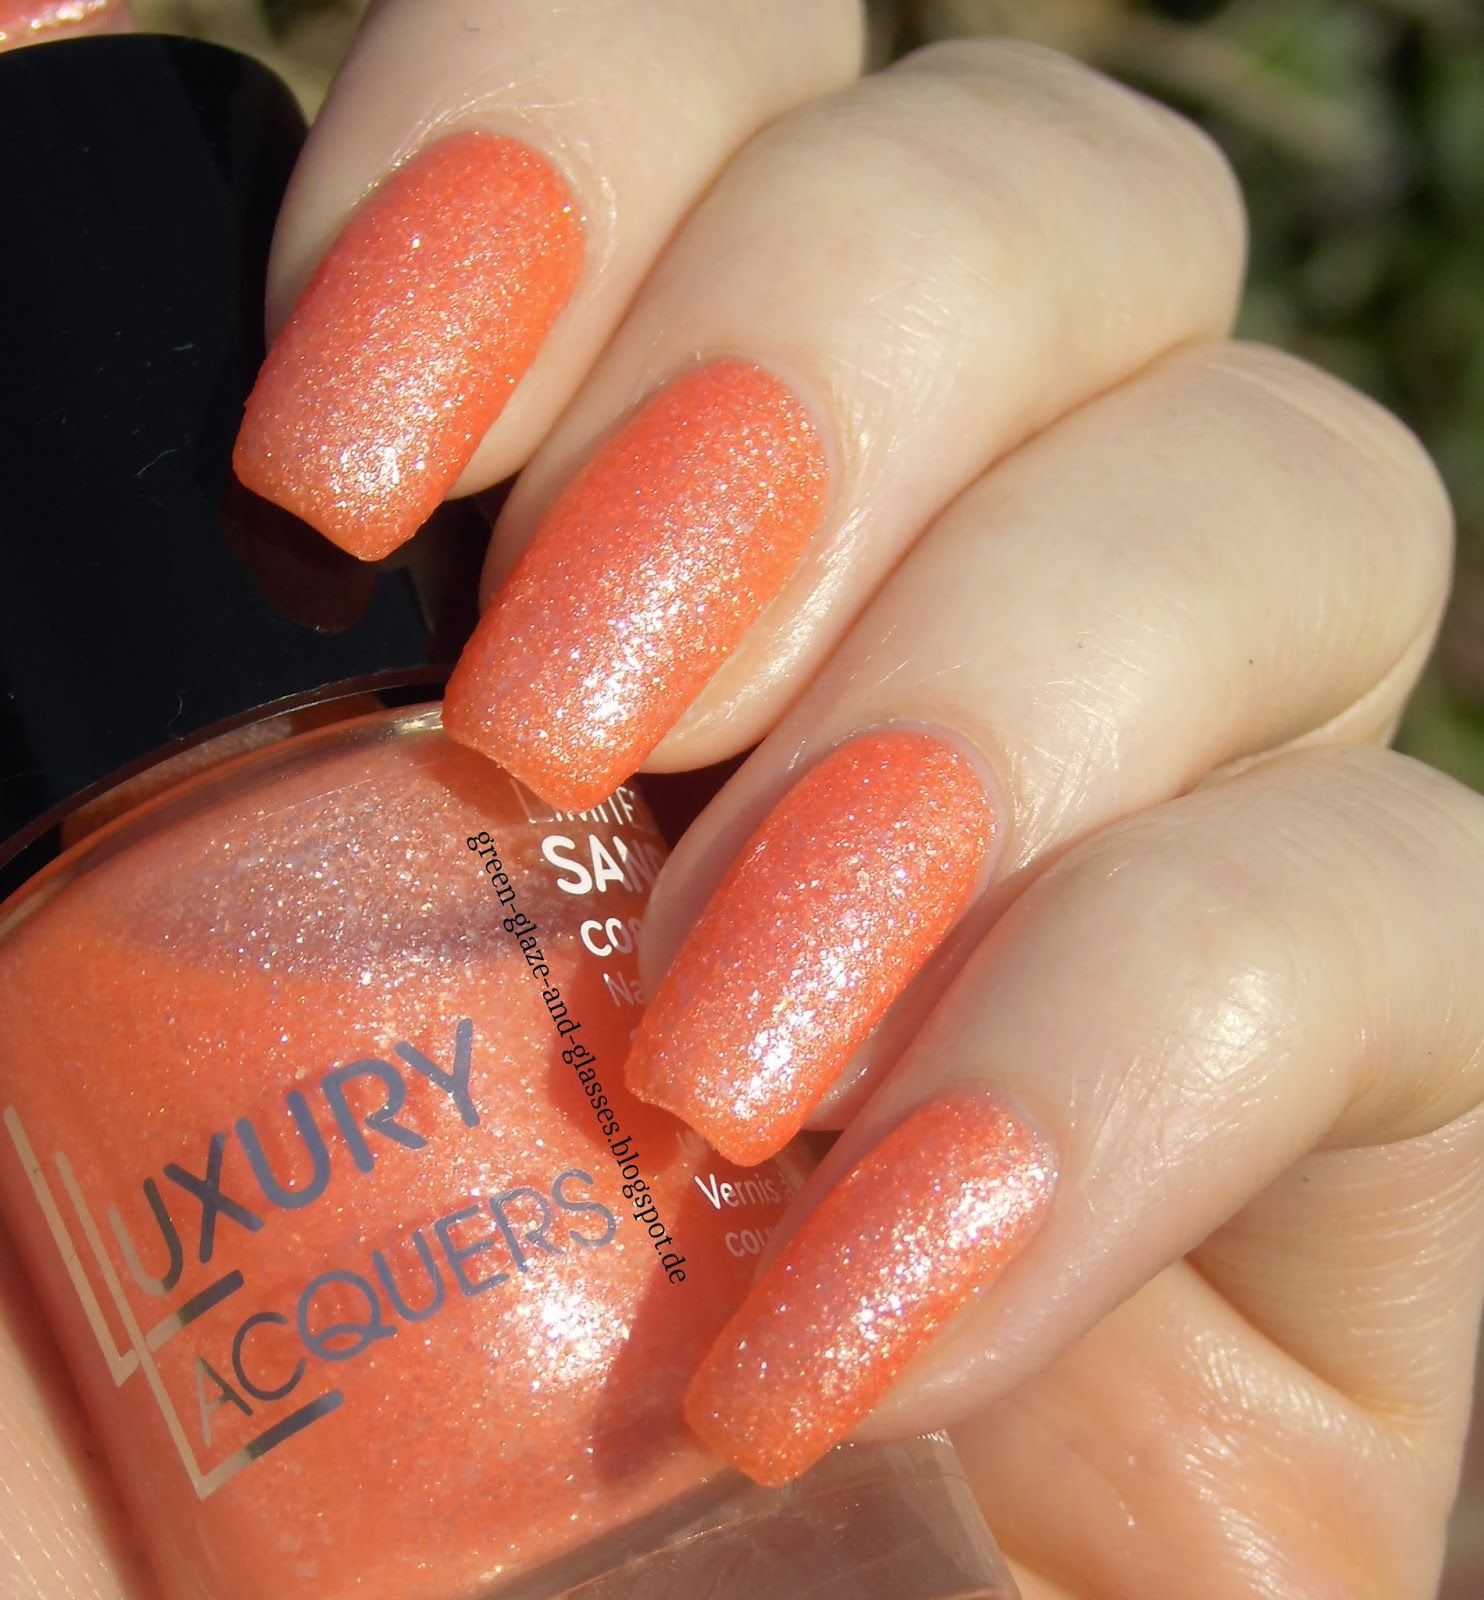 Green, Glaze & Glasses: Catrice Luxury Lacquers LE - Sand' Sation C08 Waikiki Peach